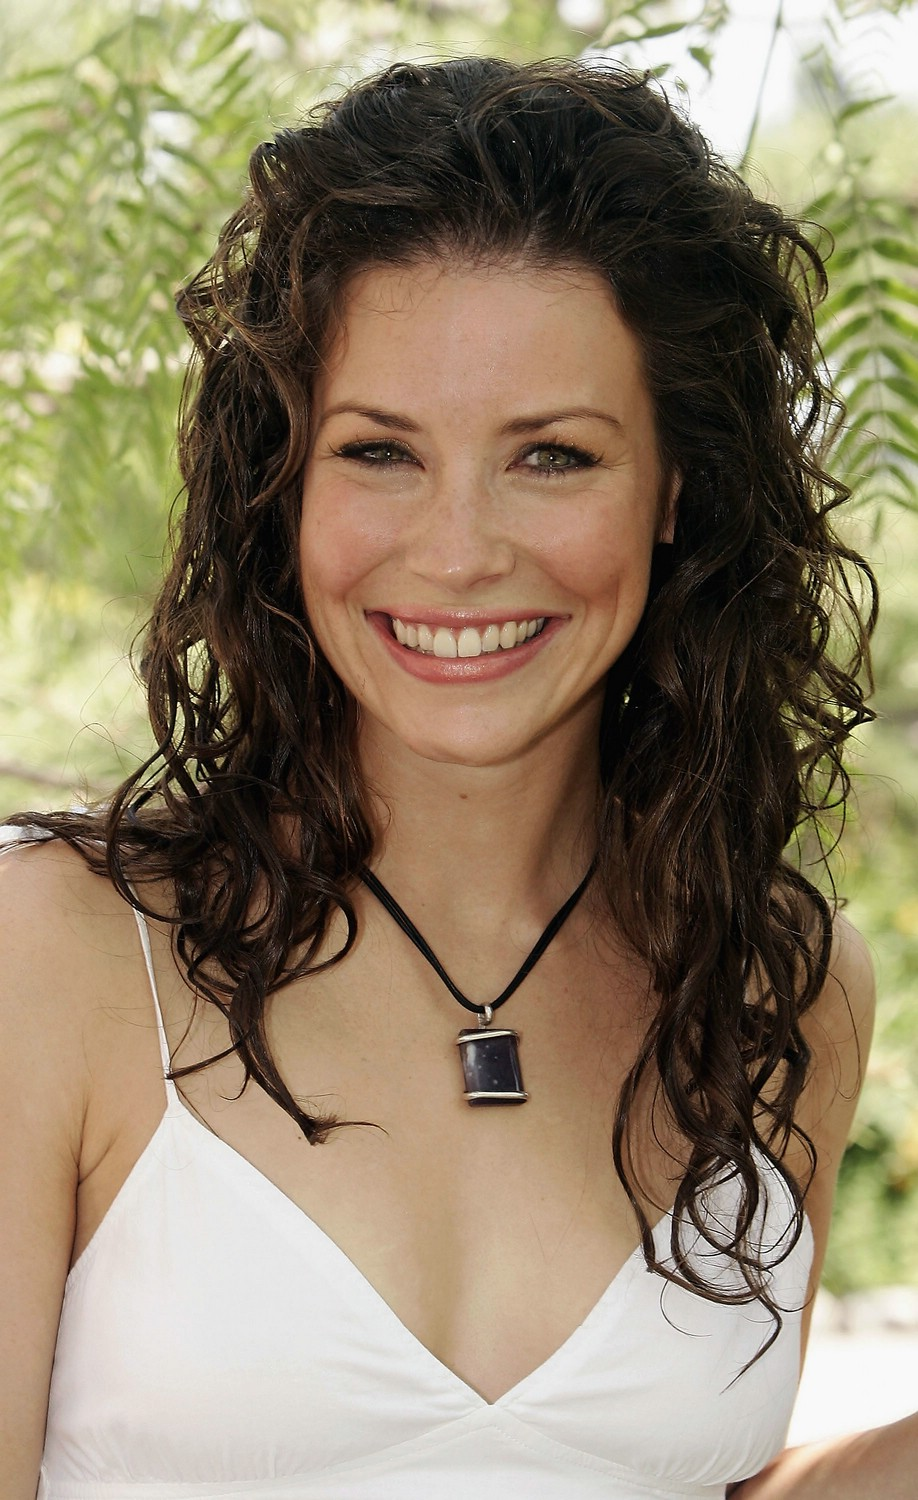 Evangeline Lilly photo 149 of 533 pics, wallpaper - photo ...